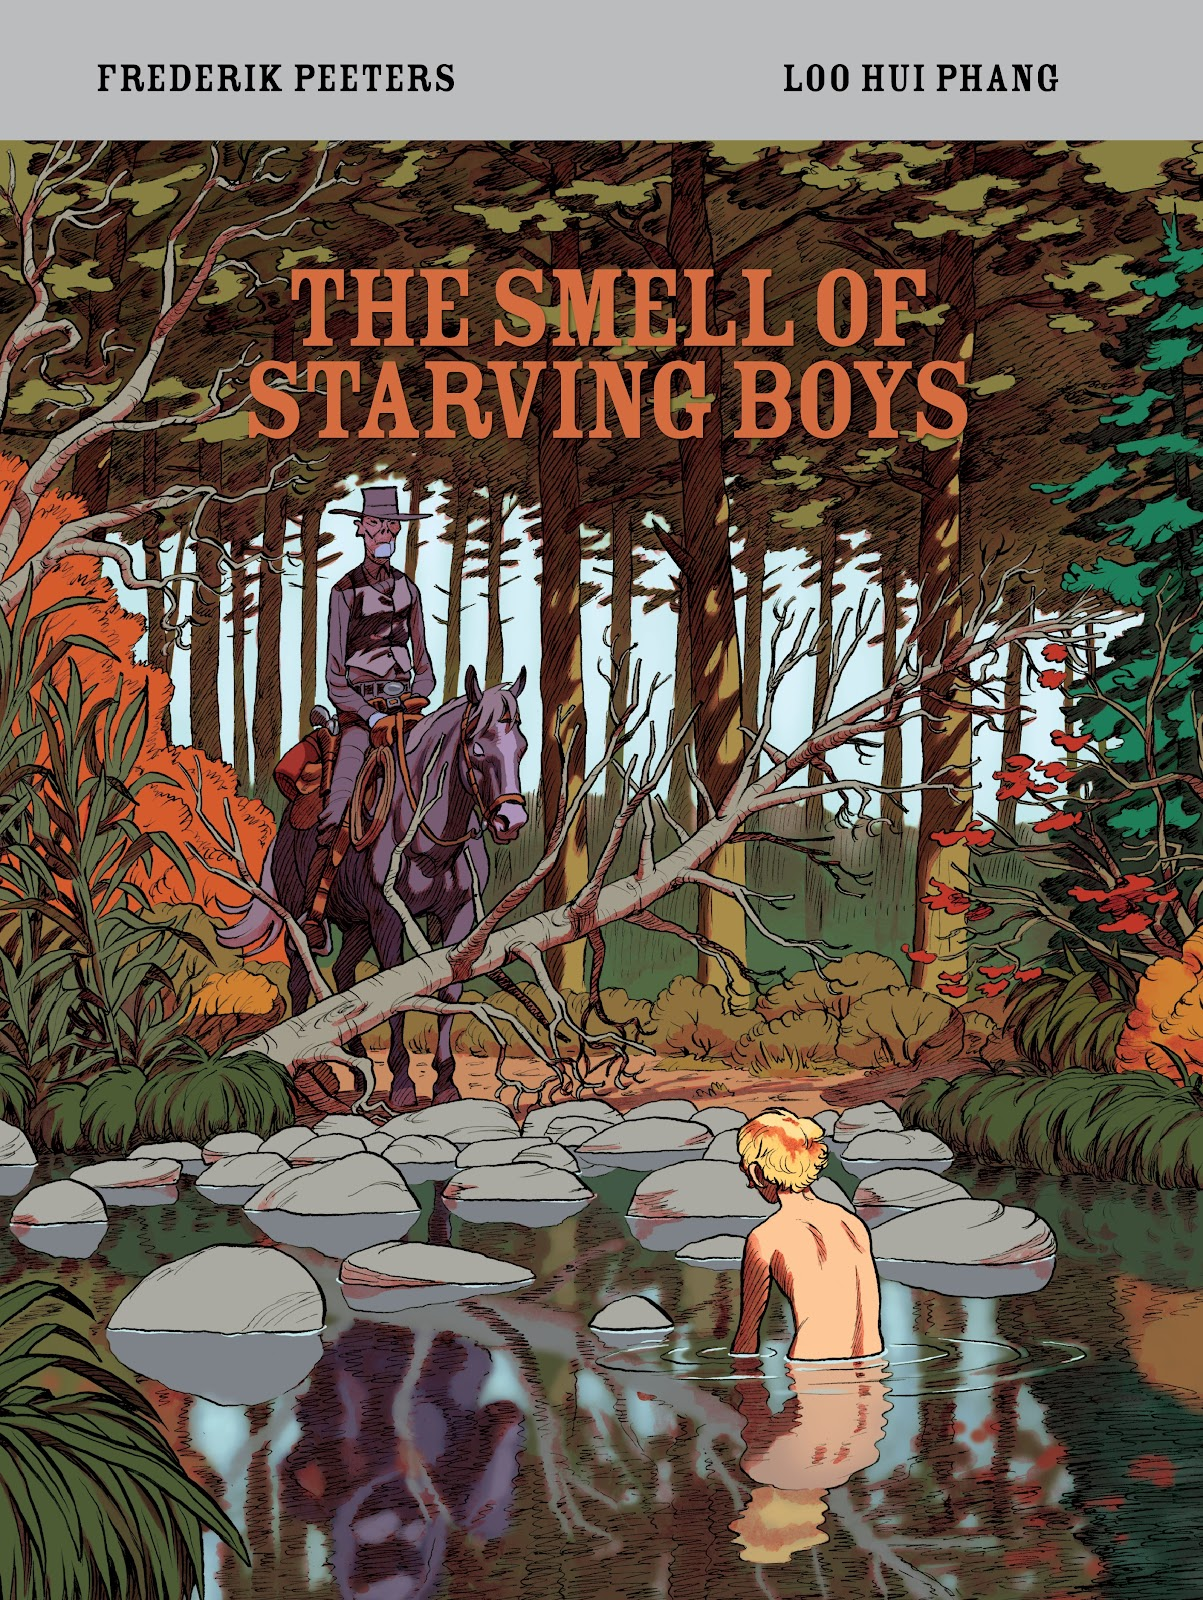 Read online The Smell of Starving Boys comic -  Issue # TPB - 1